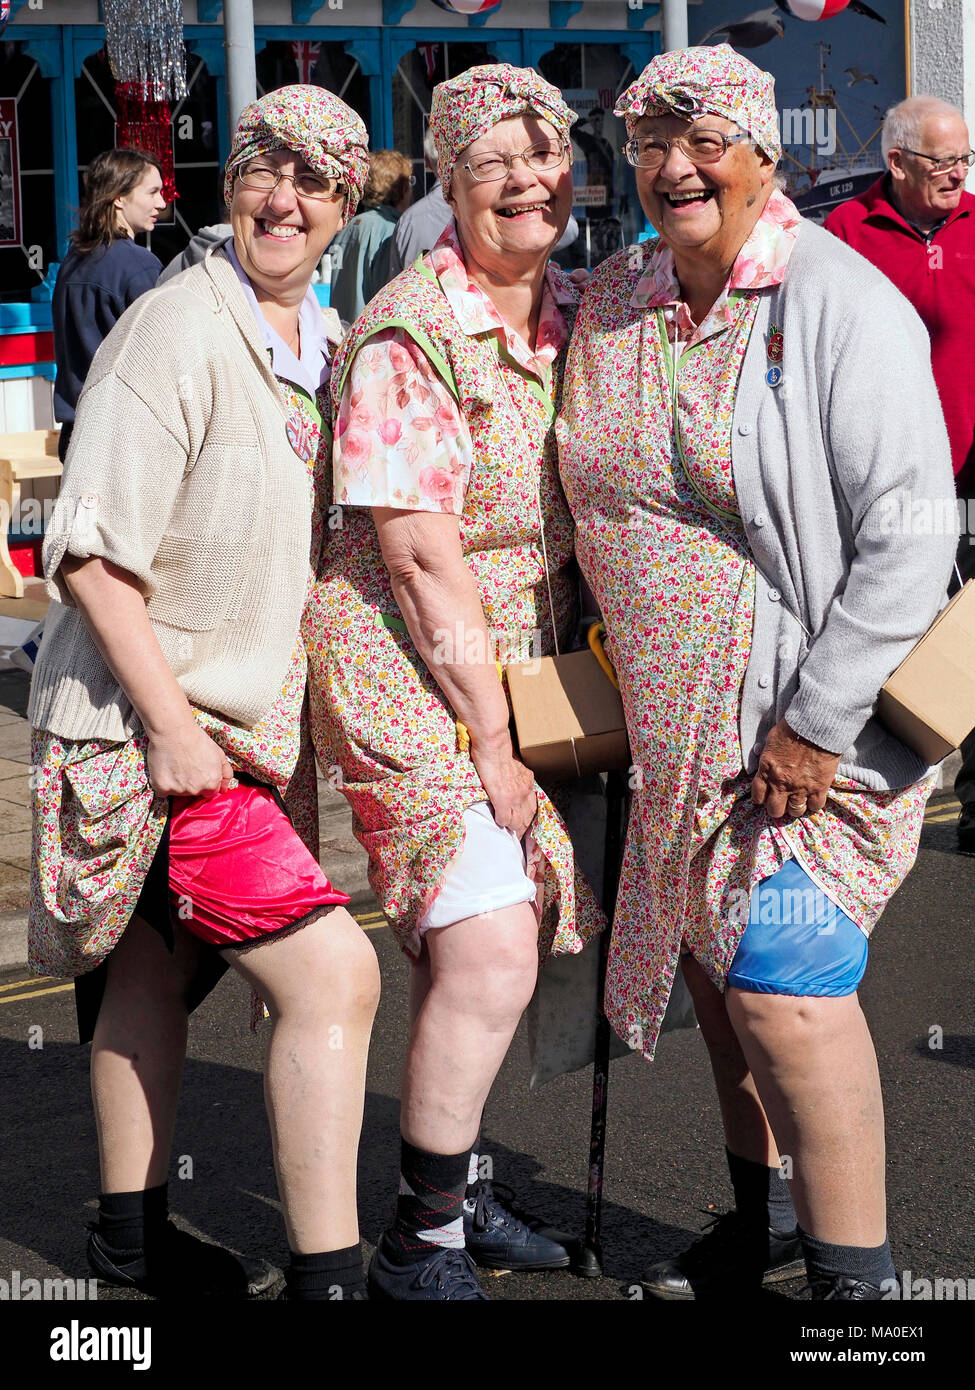 A carnival atmosphere at the 1940's weekend in Sheringham, Sept 2017, part of an event organised by the North Norfolk Railway. Mrs Mops show off. - Stock Image